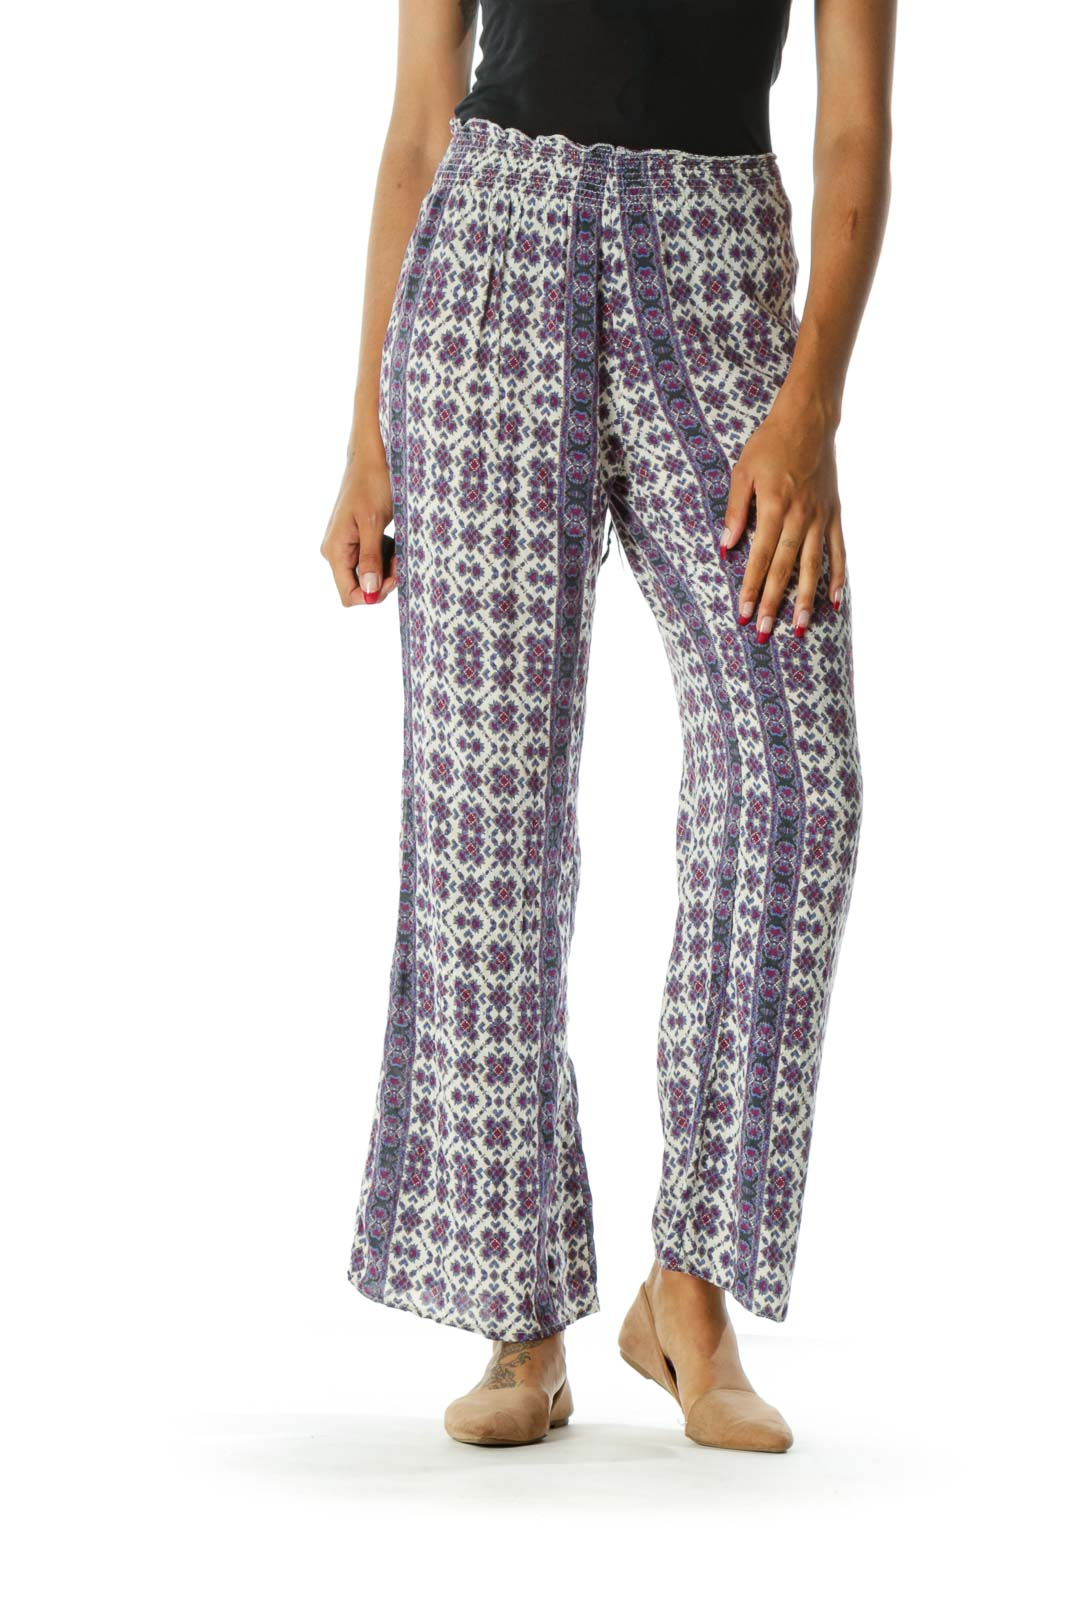 Cream Magenta & Blue High-Waisted Patterned Wide-Leg Pants